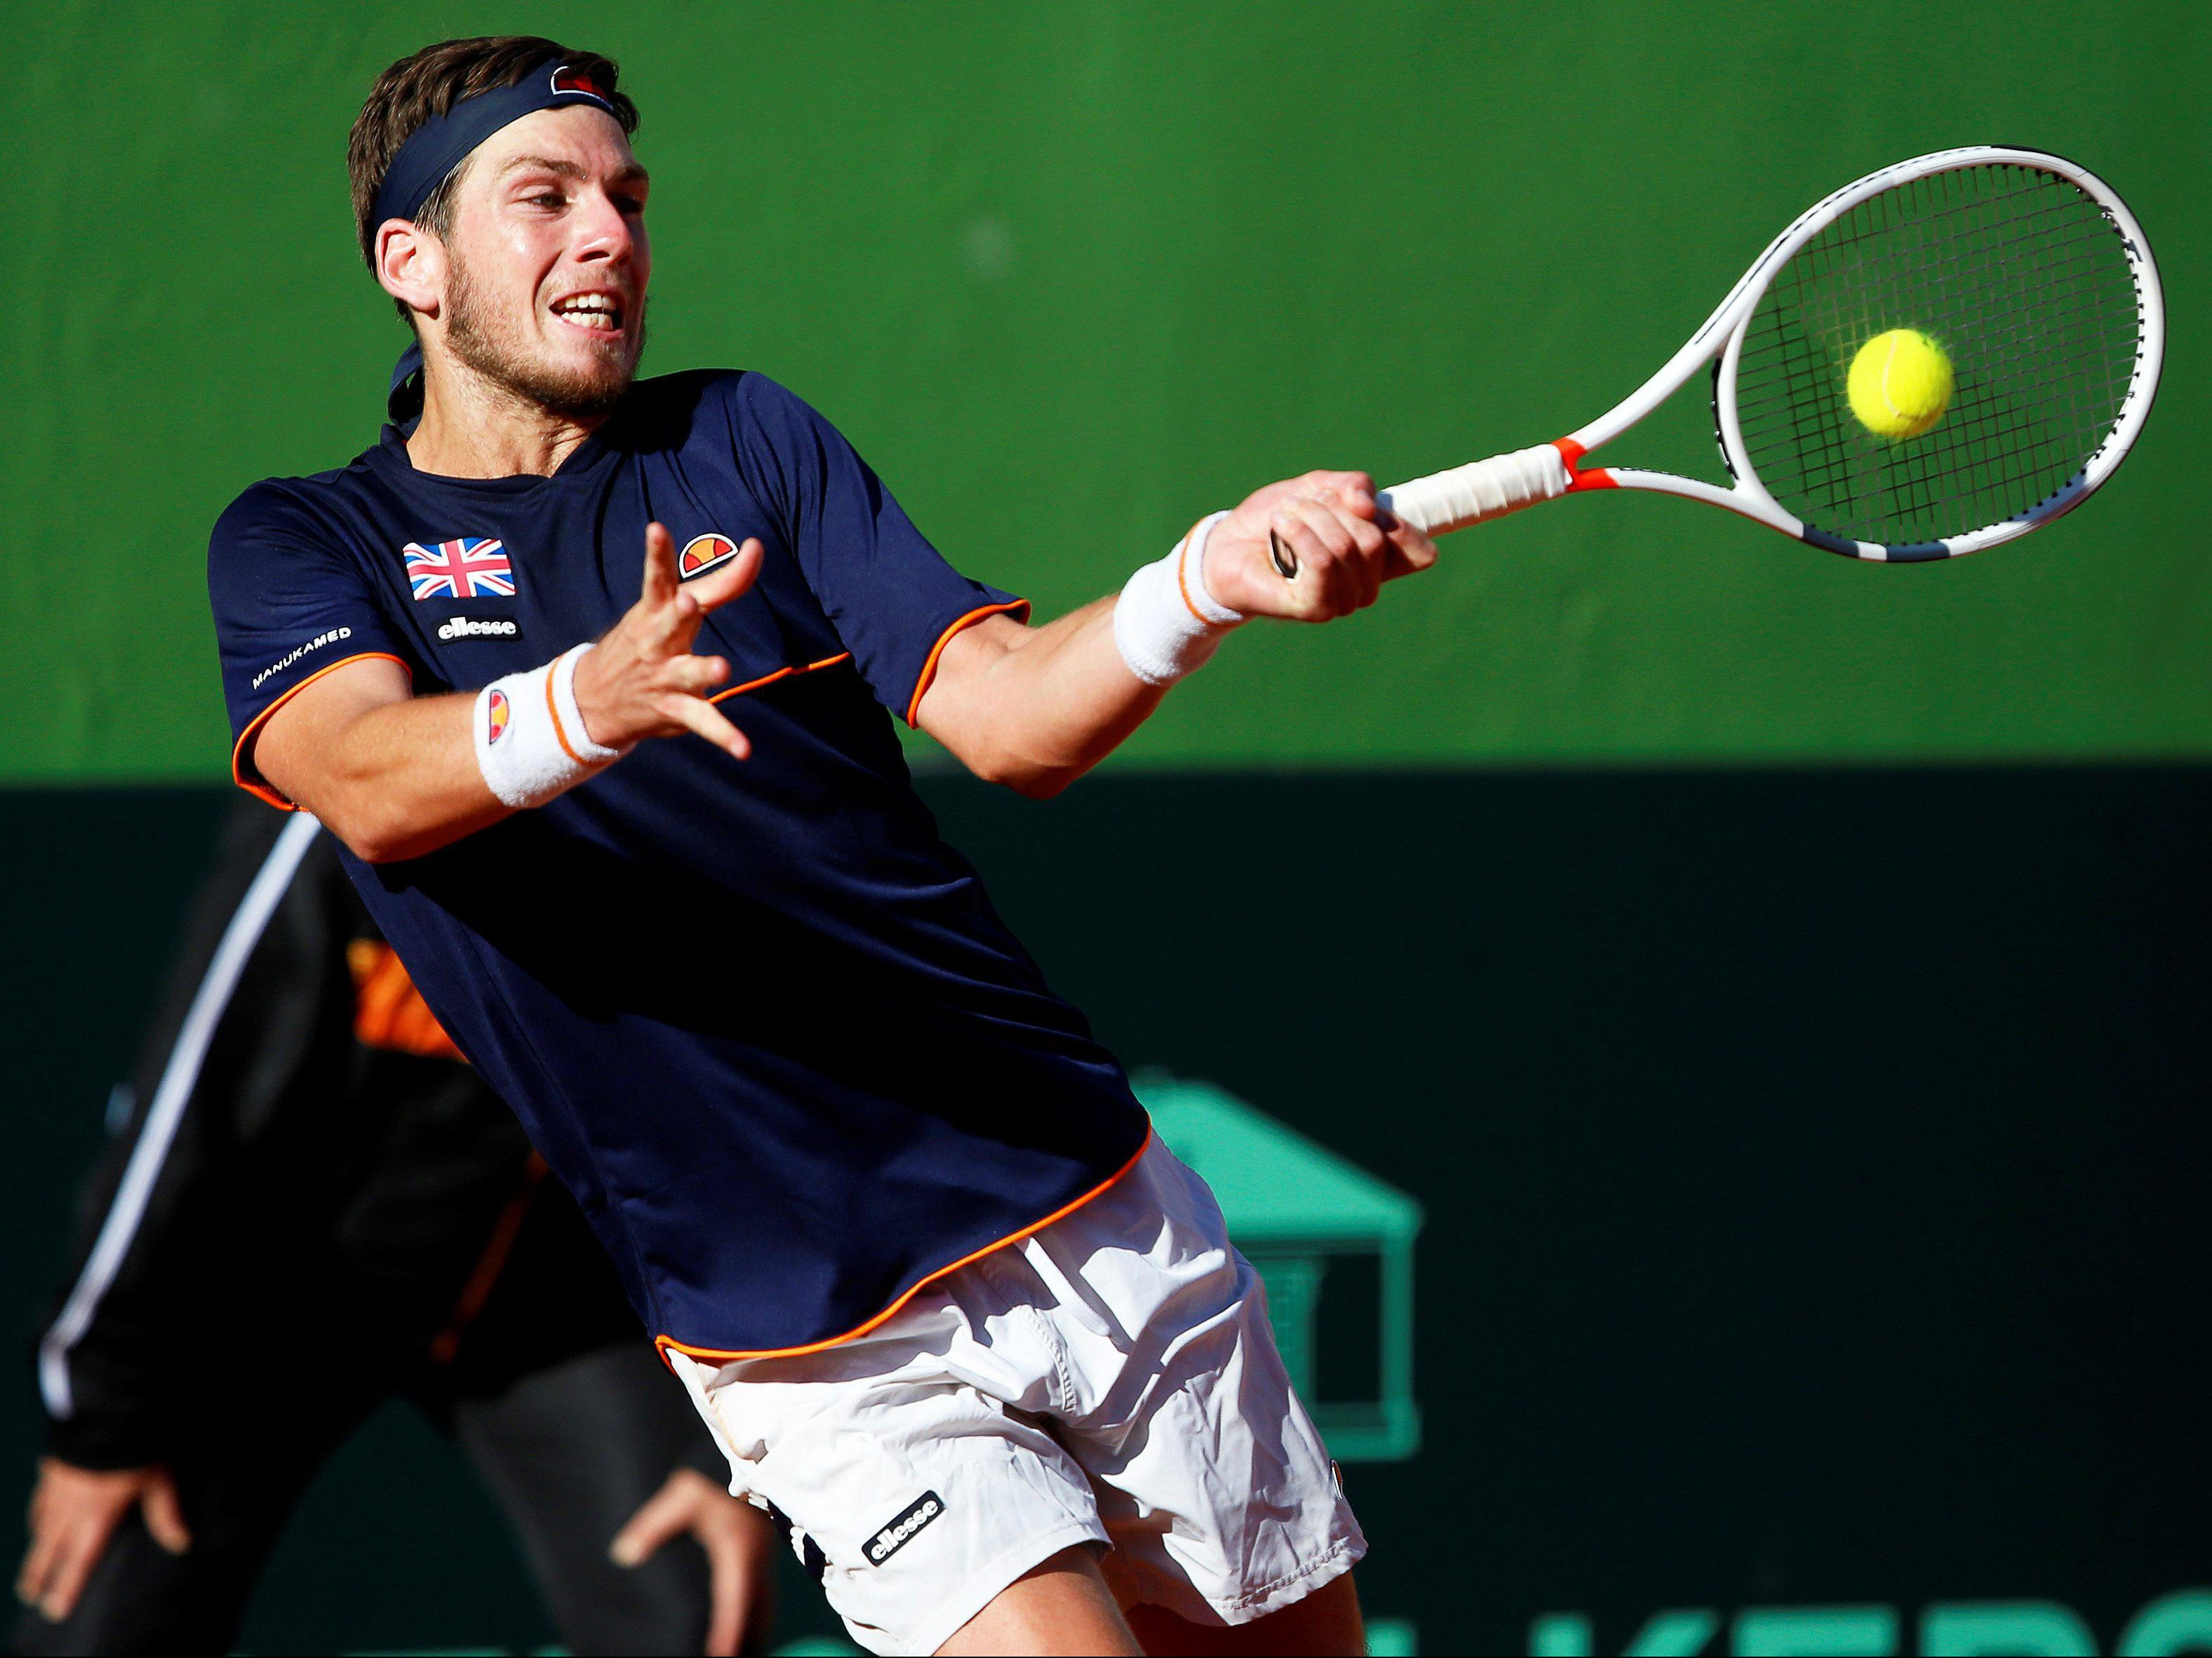 Cameron Norrie was hailed by Andy Murray for a surprise win that levelled the tie